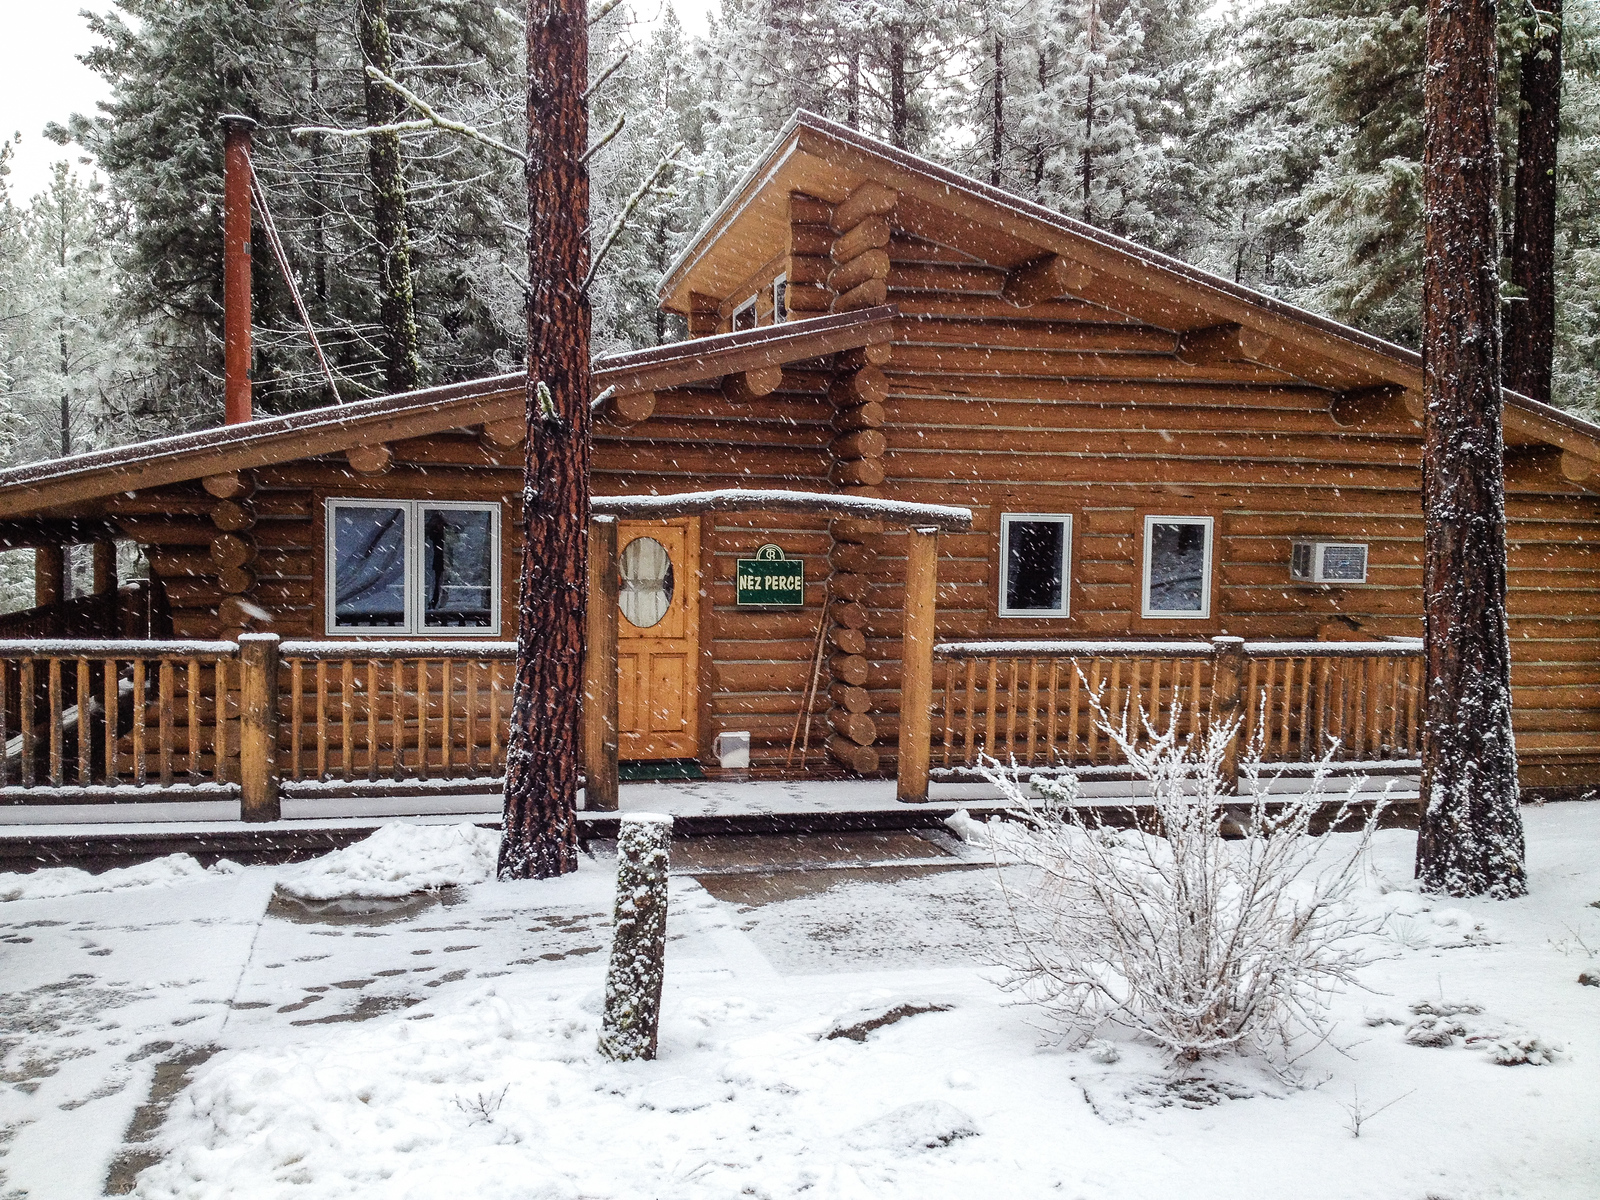 Triple Creek Ranch offers log cabin accommodations near Darby, Montana.